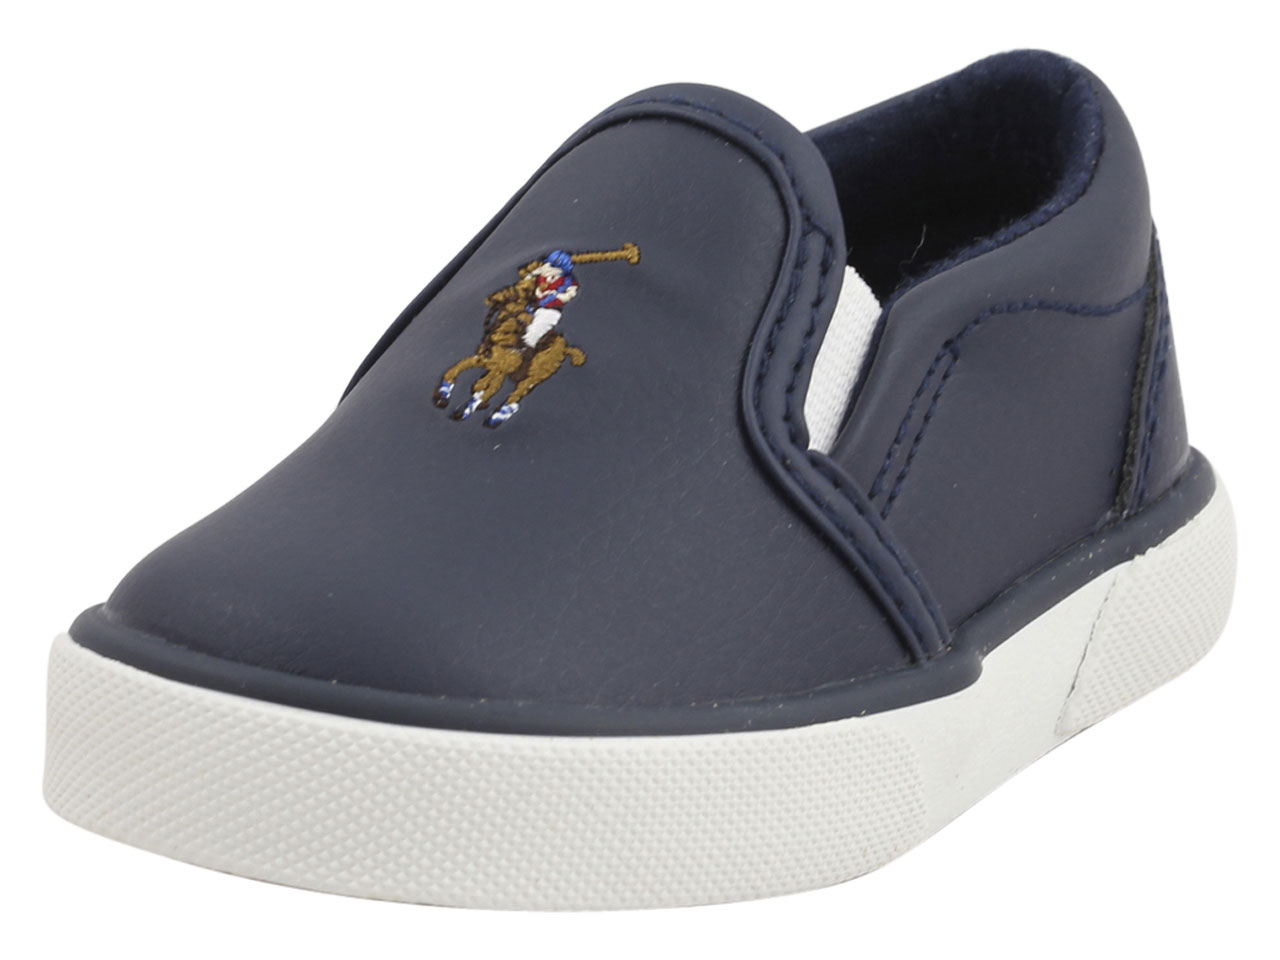 134ded63be0e3 Polo Ralph Lauren Toddler Boy s Bal-Harbour-II Navy Multi Sneakers ...